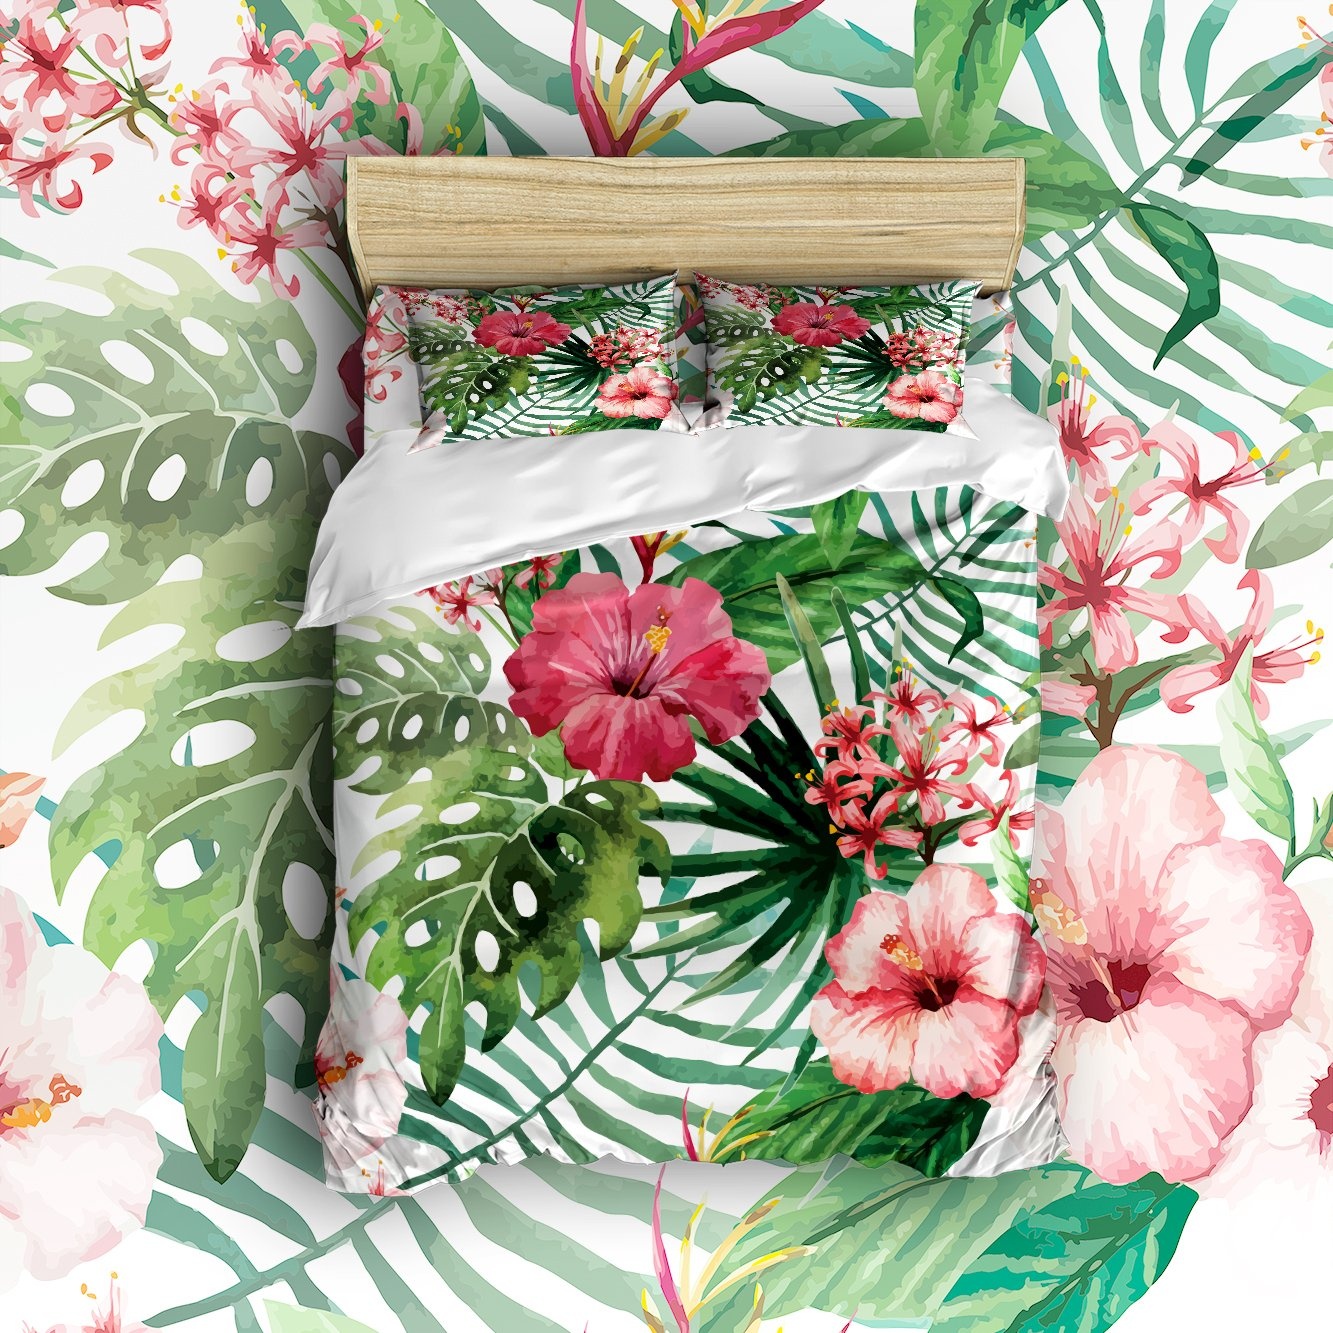 Libaoge 4 Piece Bed Sheets Set, Tropical Wild Orchid Flowers with Palm Leaves Print Exotic Style Nature Artwork, 1 Flat Sheet 1 Duvet Cover and 2 Pillow Cases